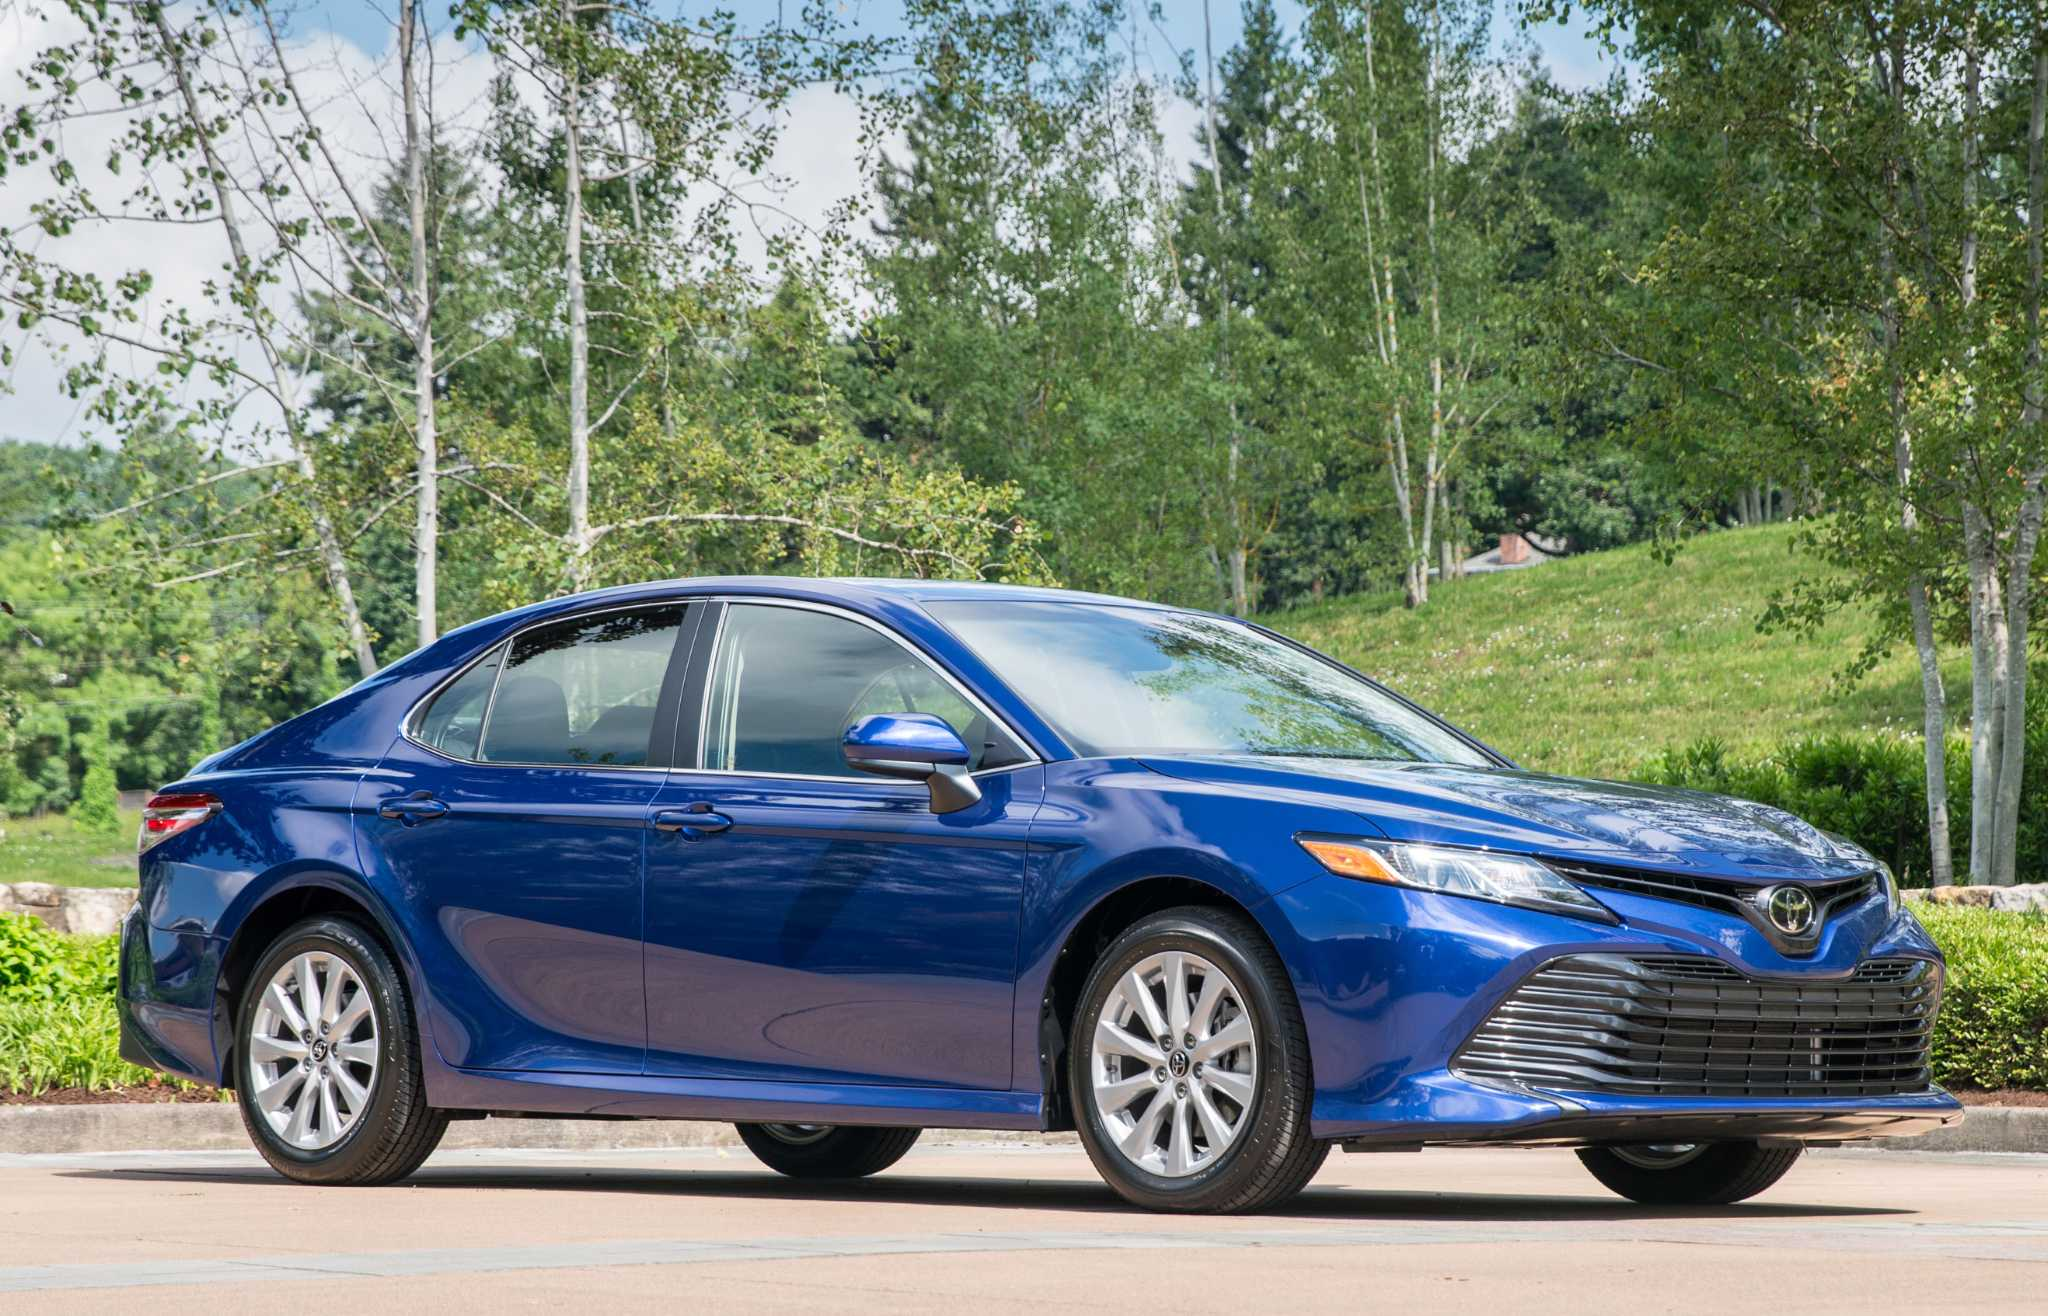 Stylishly redesigned Toyota Camry has lots of new technology, features